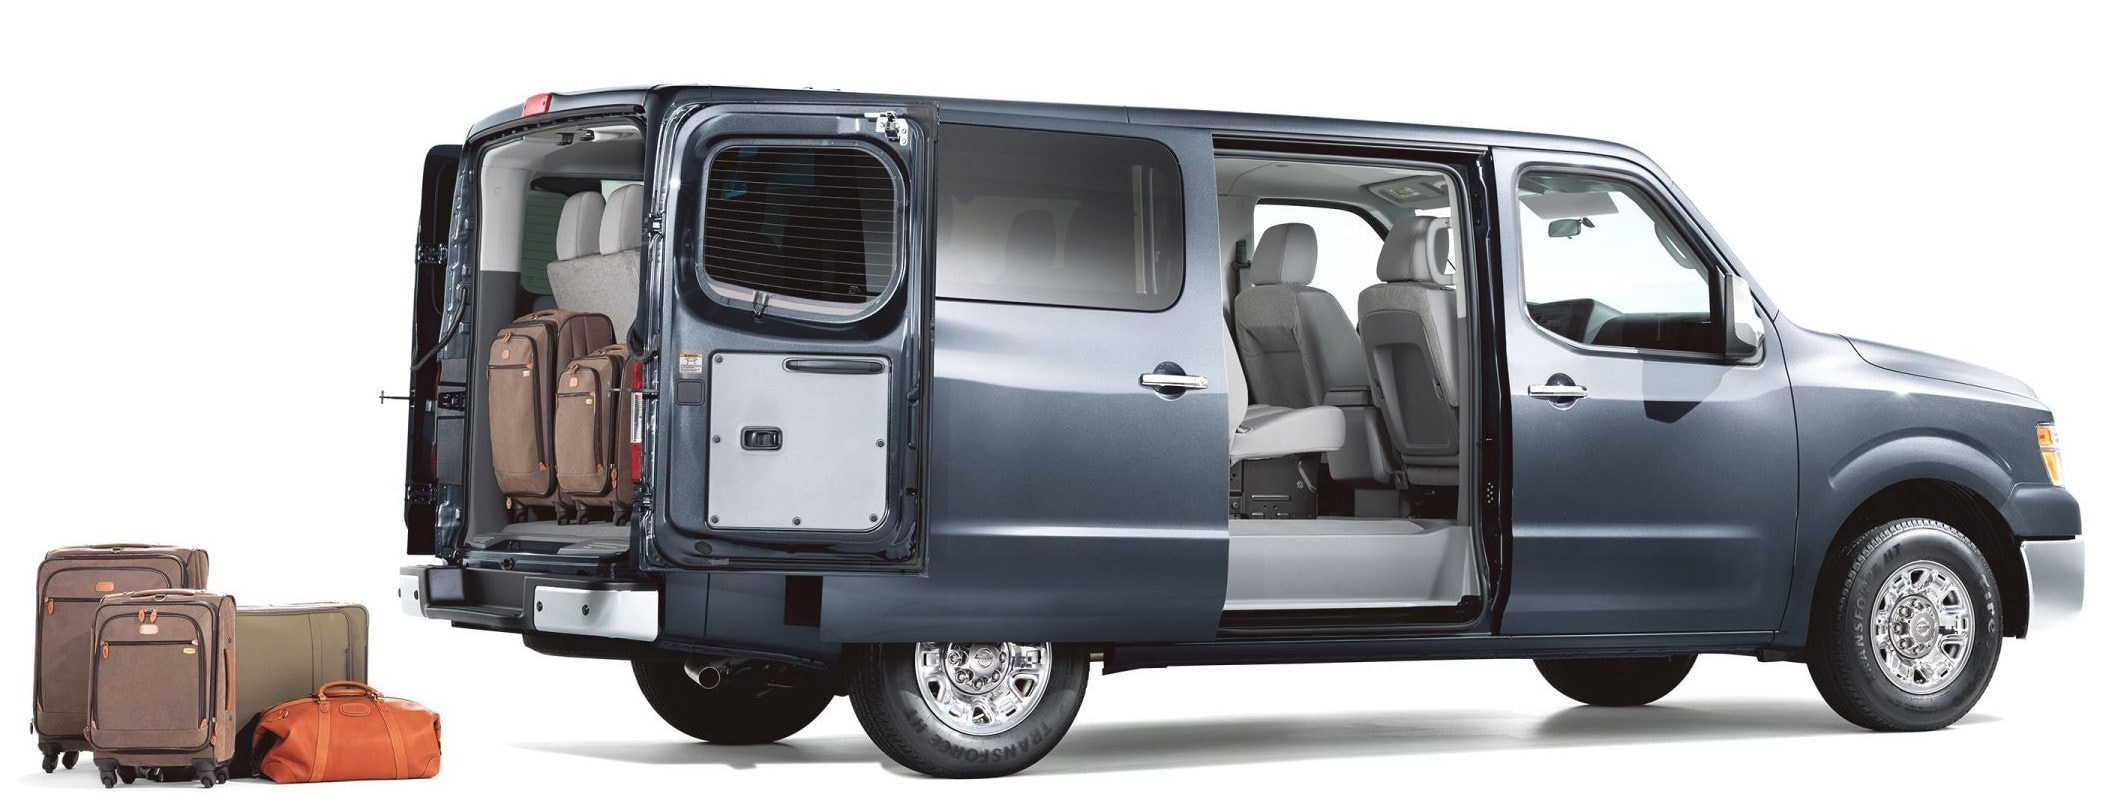 Nissan NV 10 Passenger Vehicle